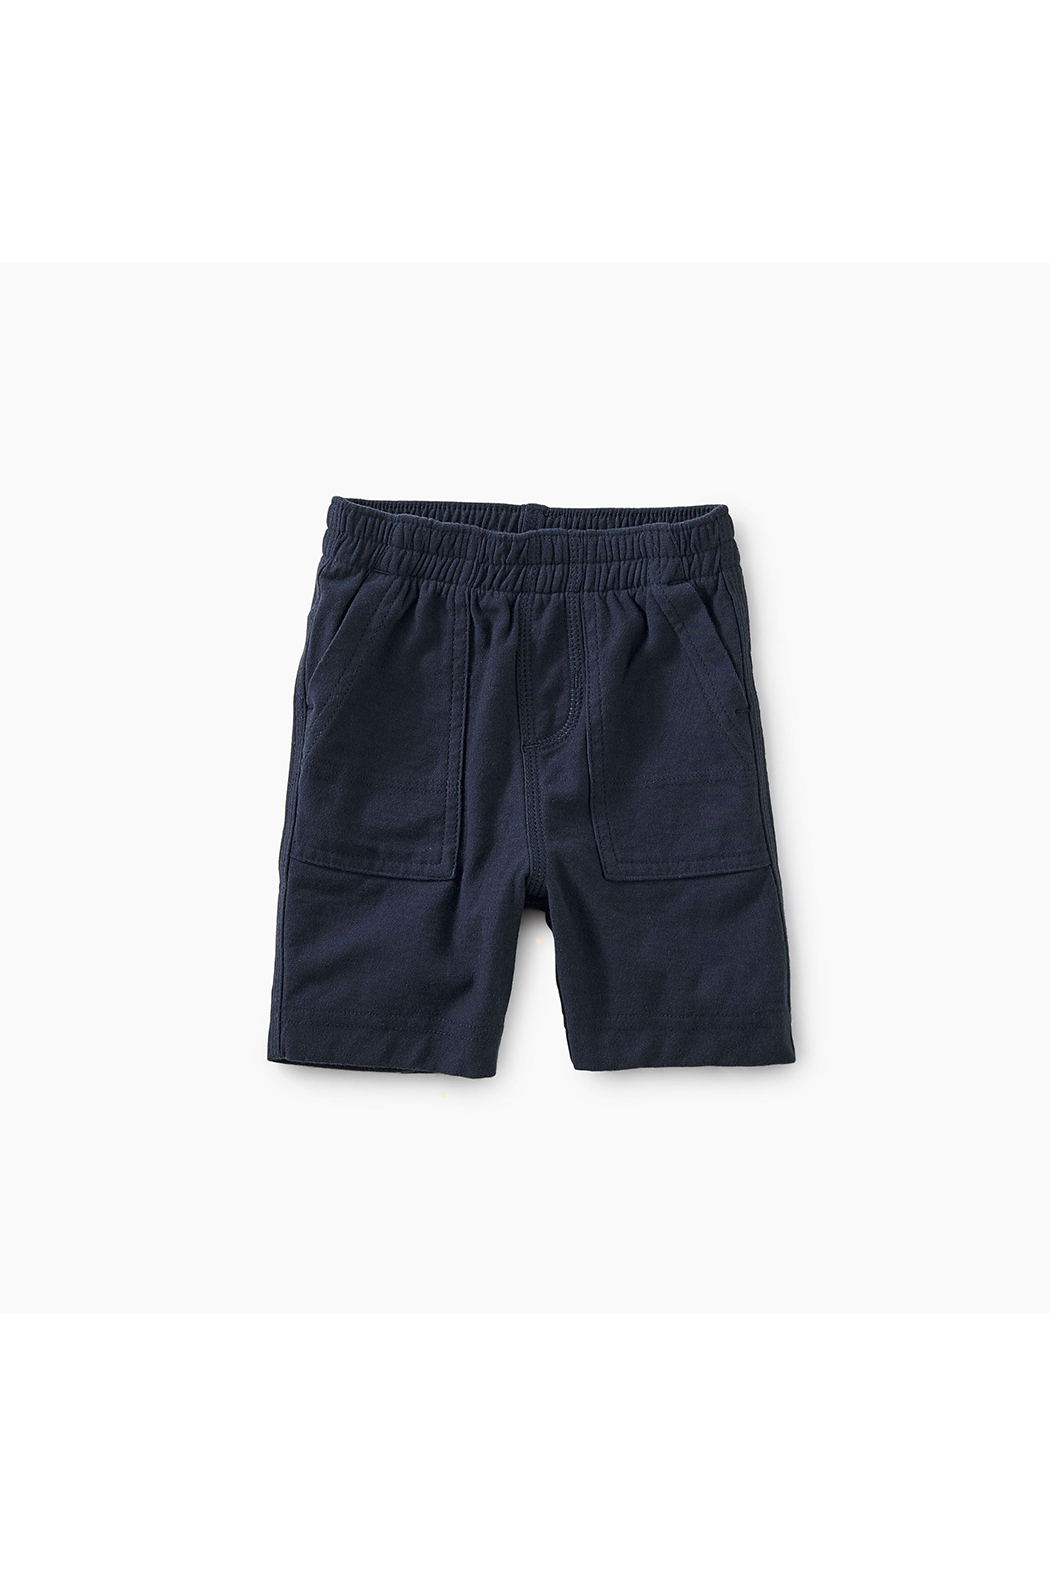 Tea Collection Playwear Baby Shorts - Main Image